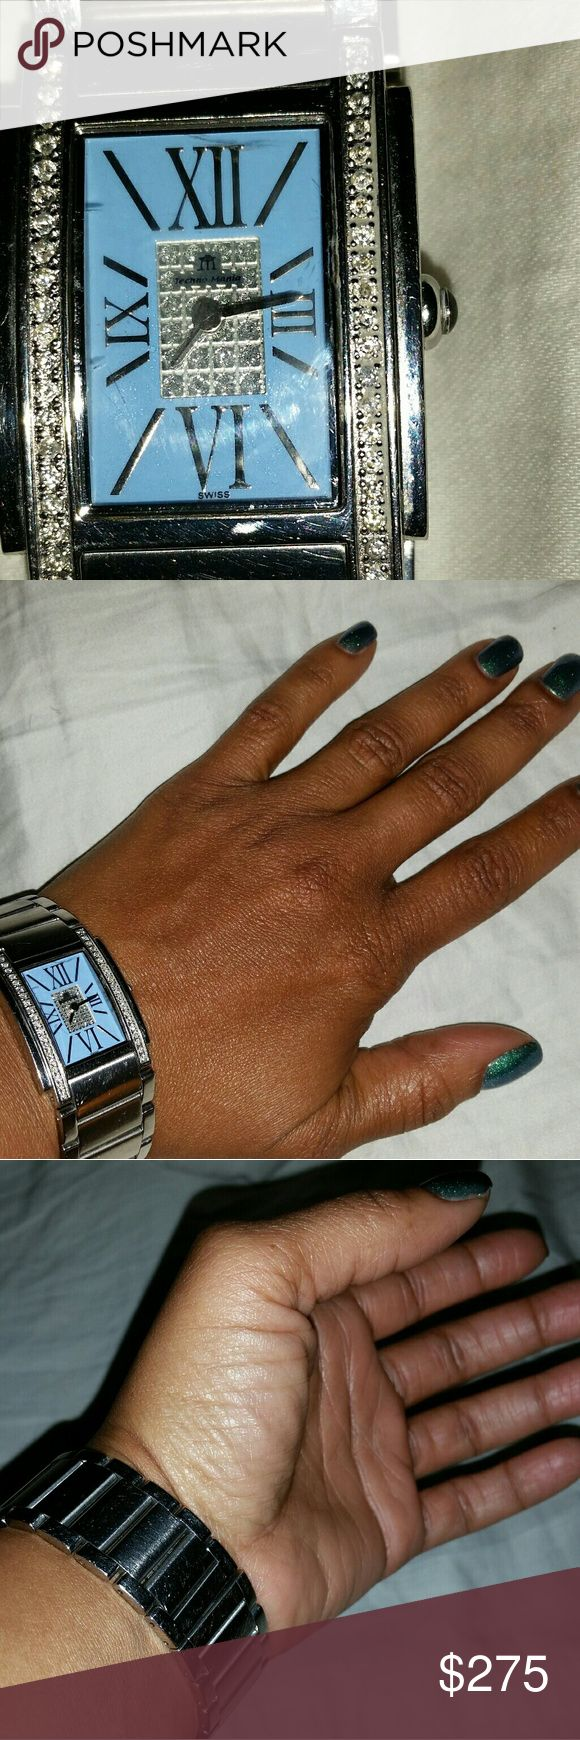 100% Authentic Techno Mania Ladies Diamond Watch Techno Mania Watch, Stainless Steel with Genuine Diamonds. Turquoise face with Roman Numerals. I love this watch,  but time for an upgrade. Other than some normal wear and tear, like scratches, and the clasp needs to be tightened,watch is in good condition . This is an expensive watch,  ladies and worth it. Technomarine Accessories Watches